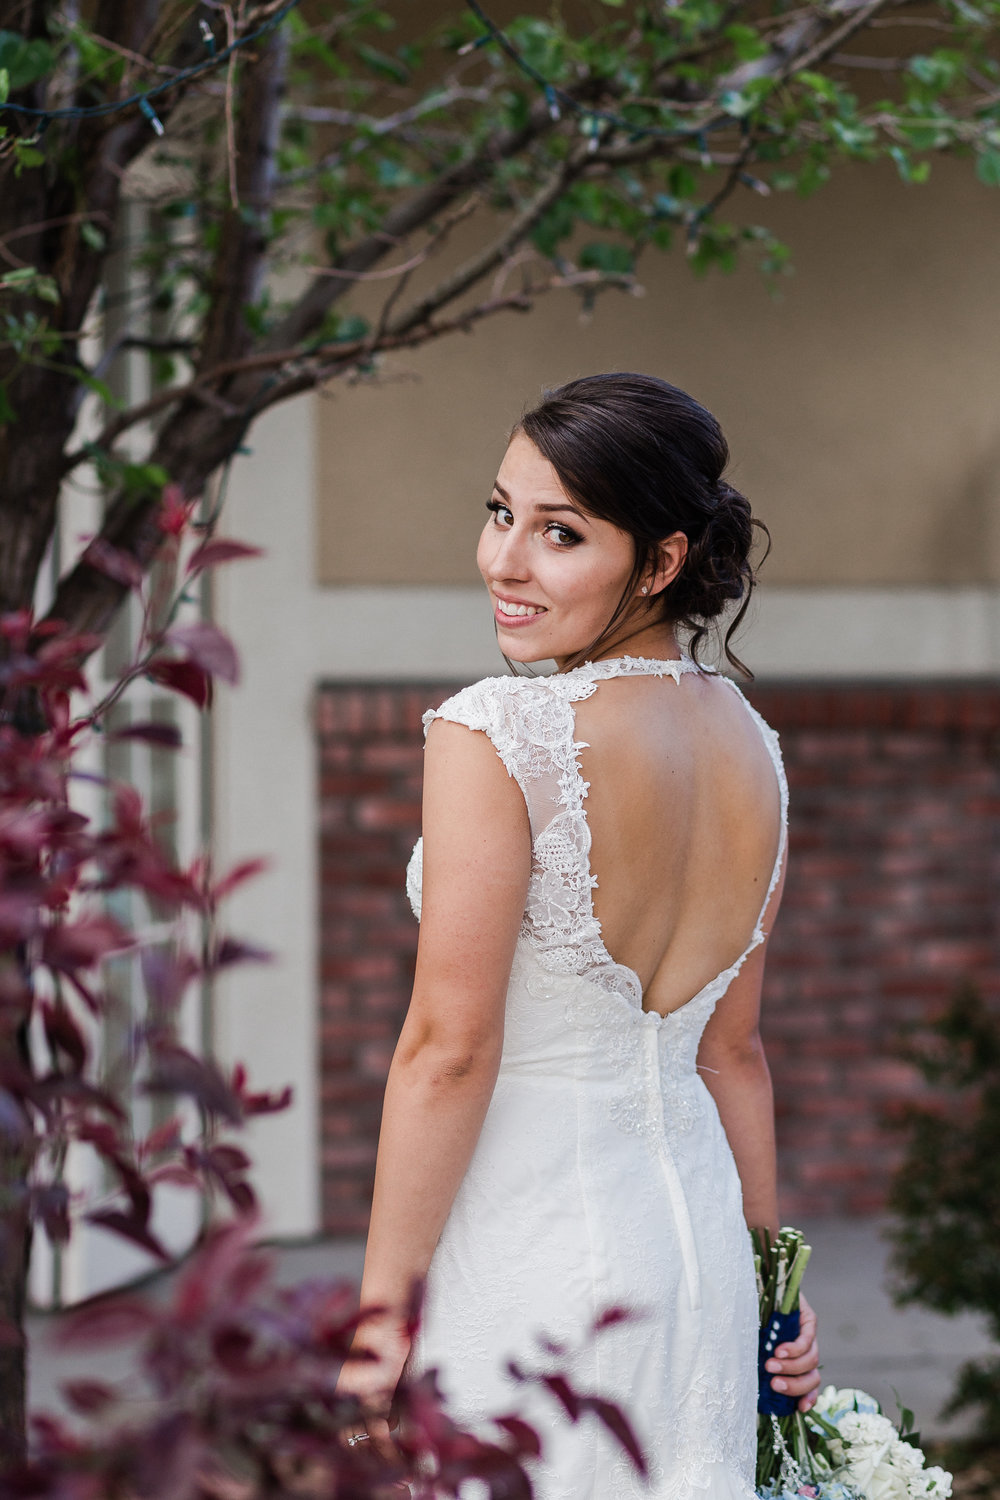 Denver-traveling-wedding-hairstylist-Colorado-updo-and-braiding-specialist